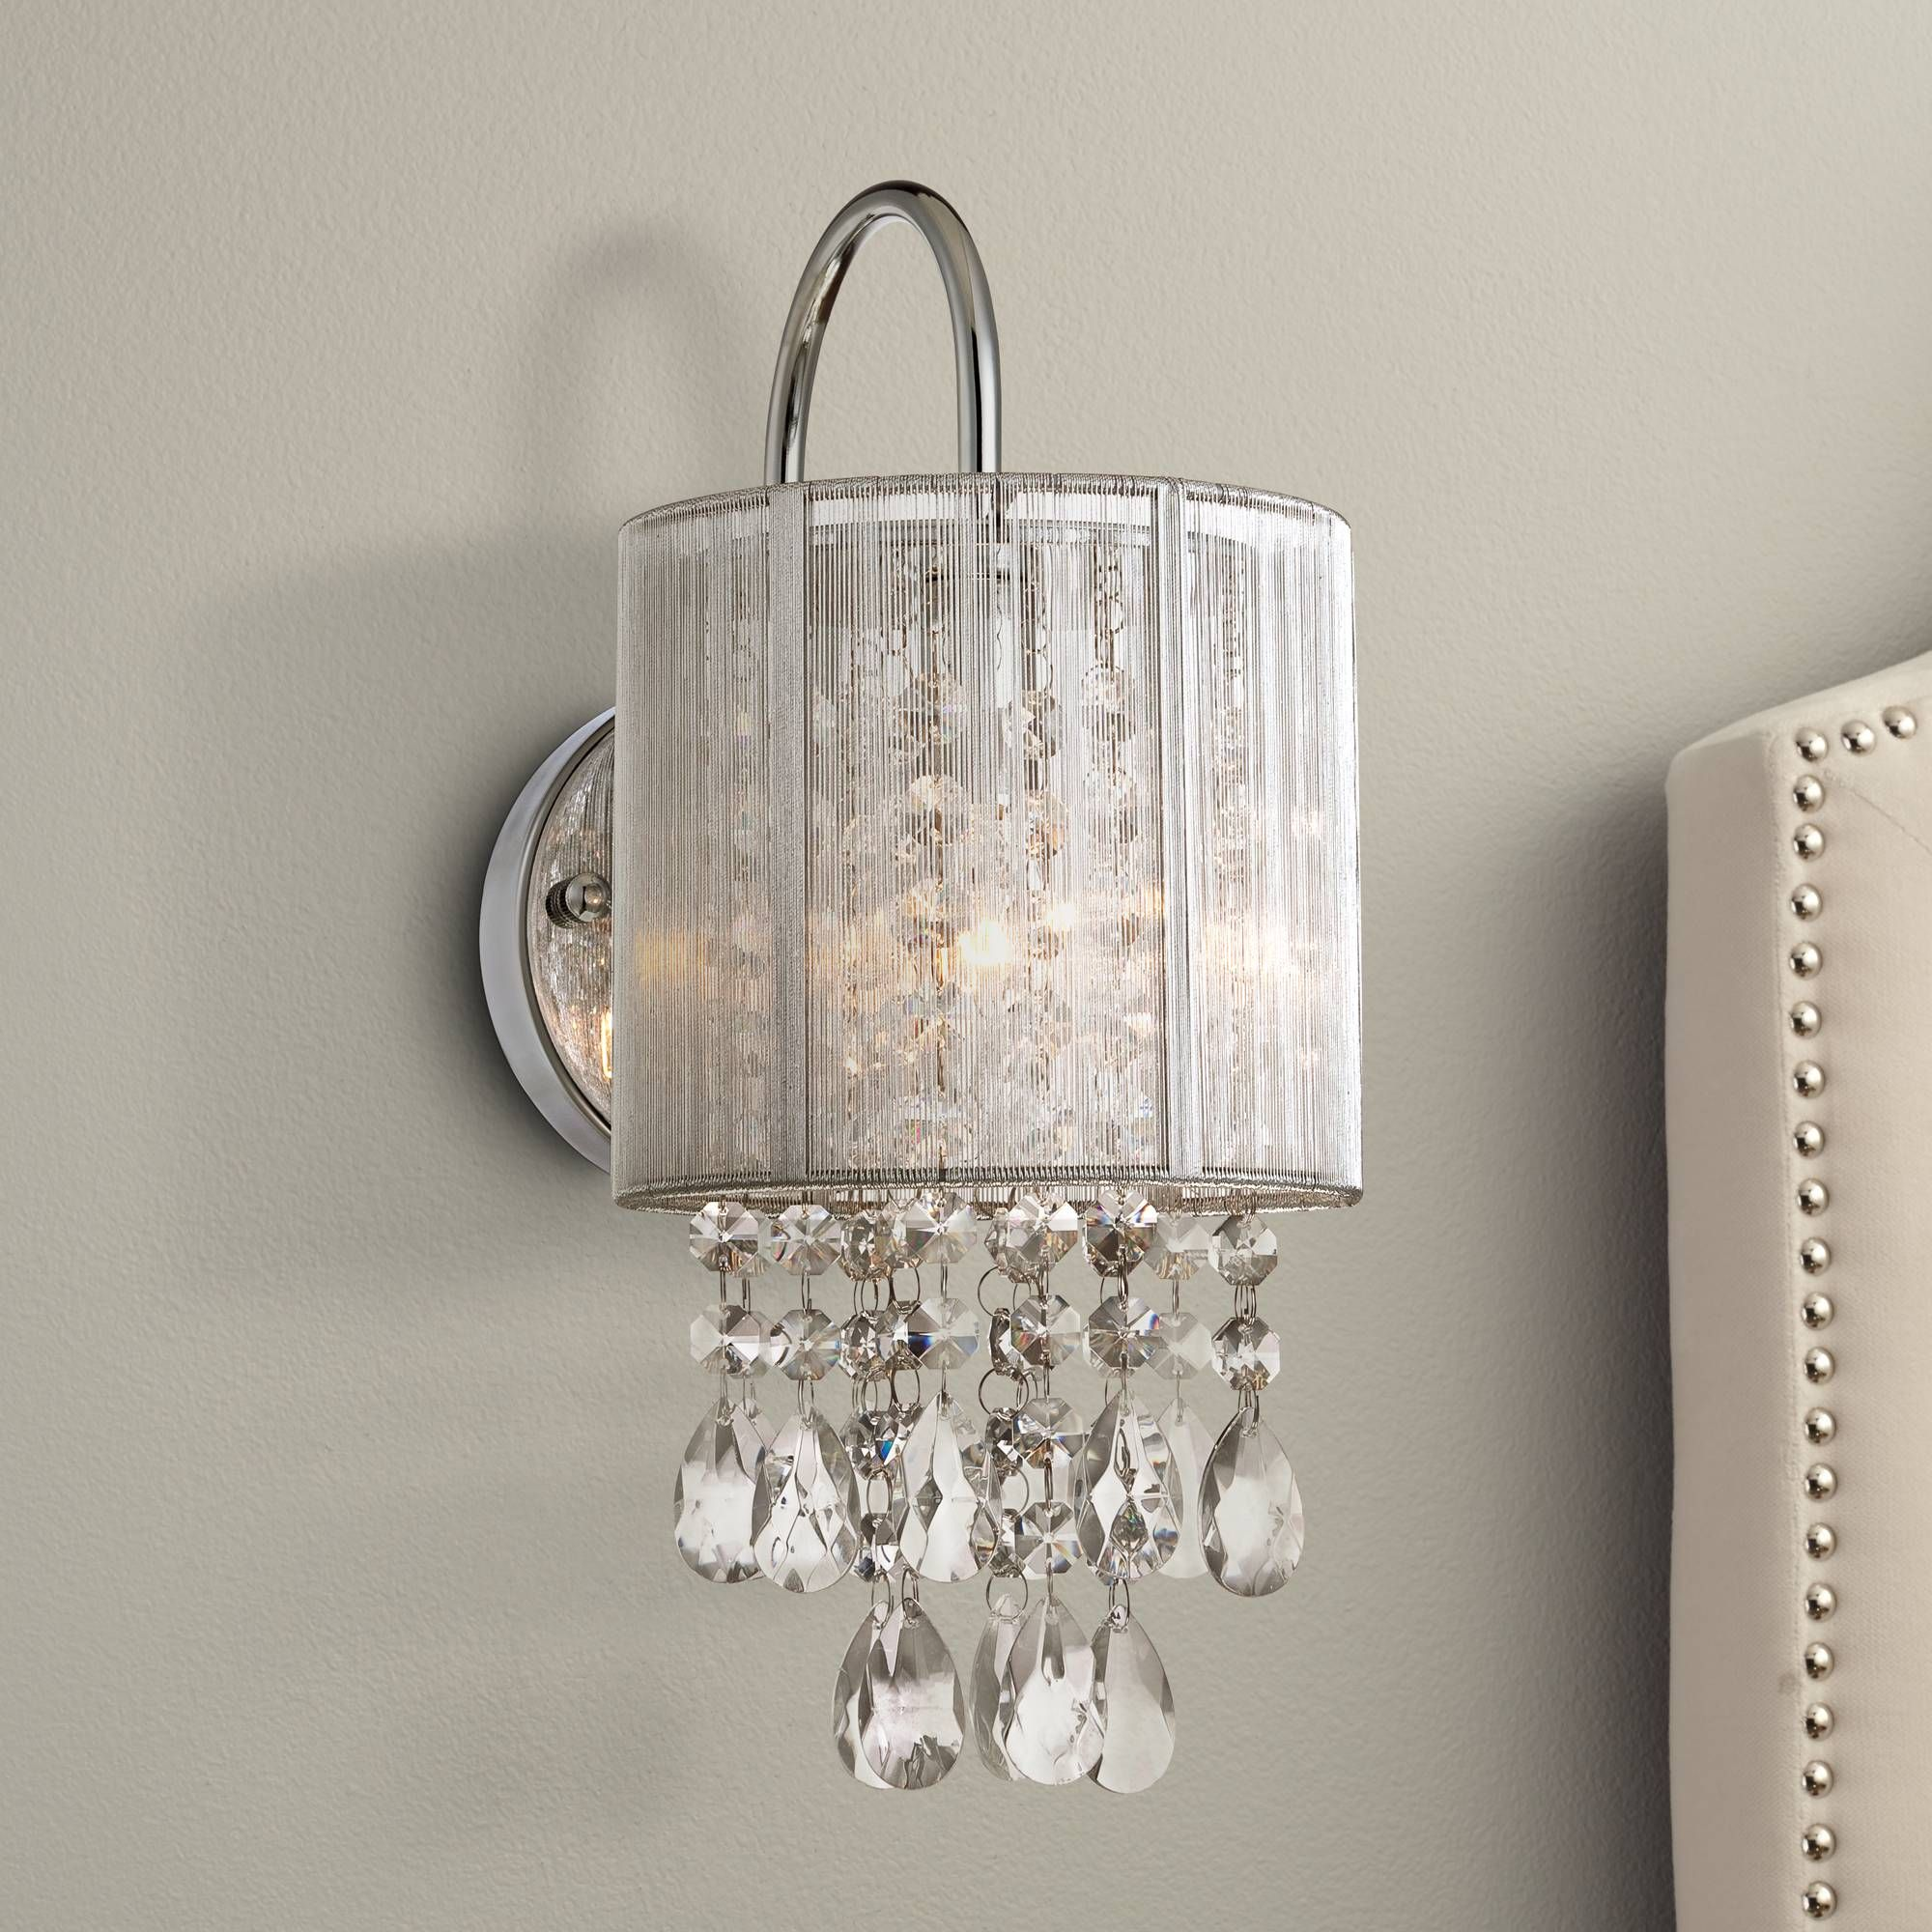 "Possini Euro Silver Line 12""H Chrome and Crystal Sconce"